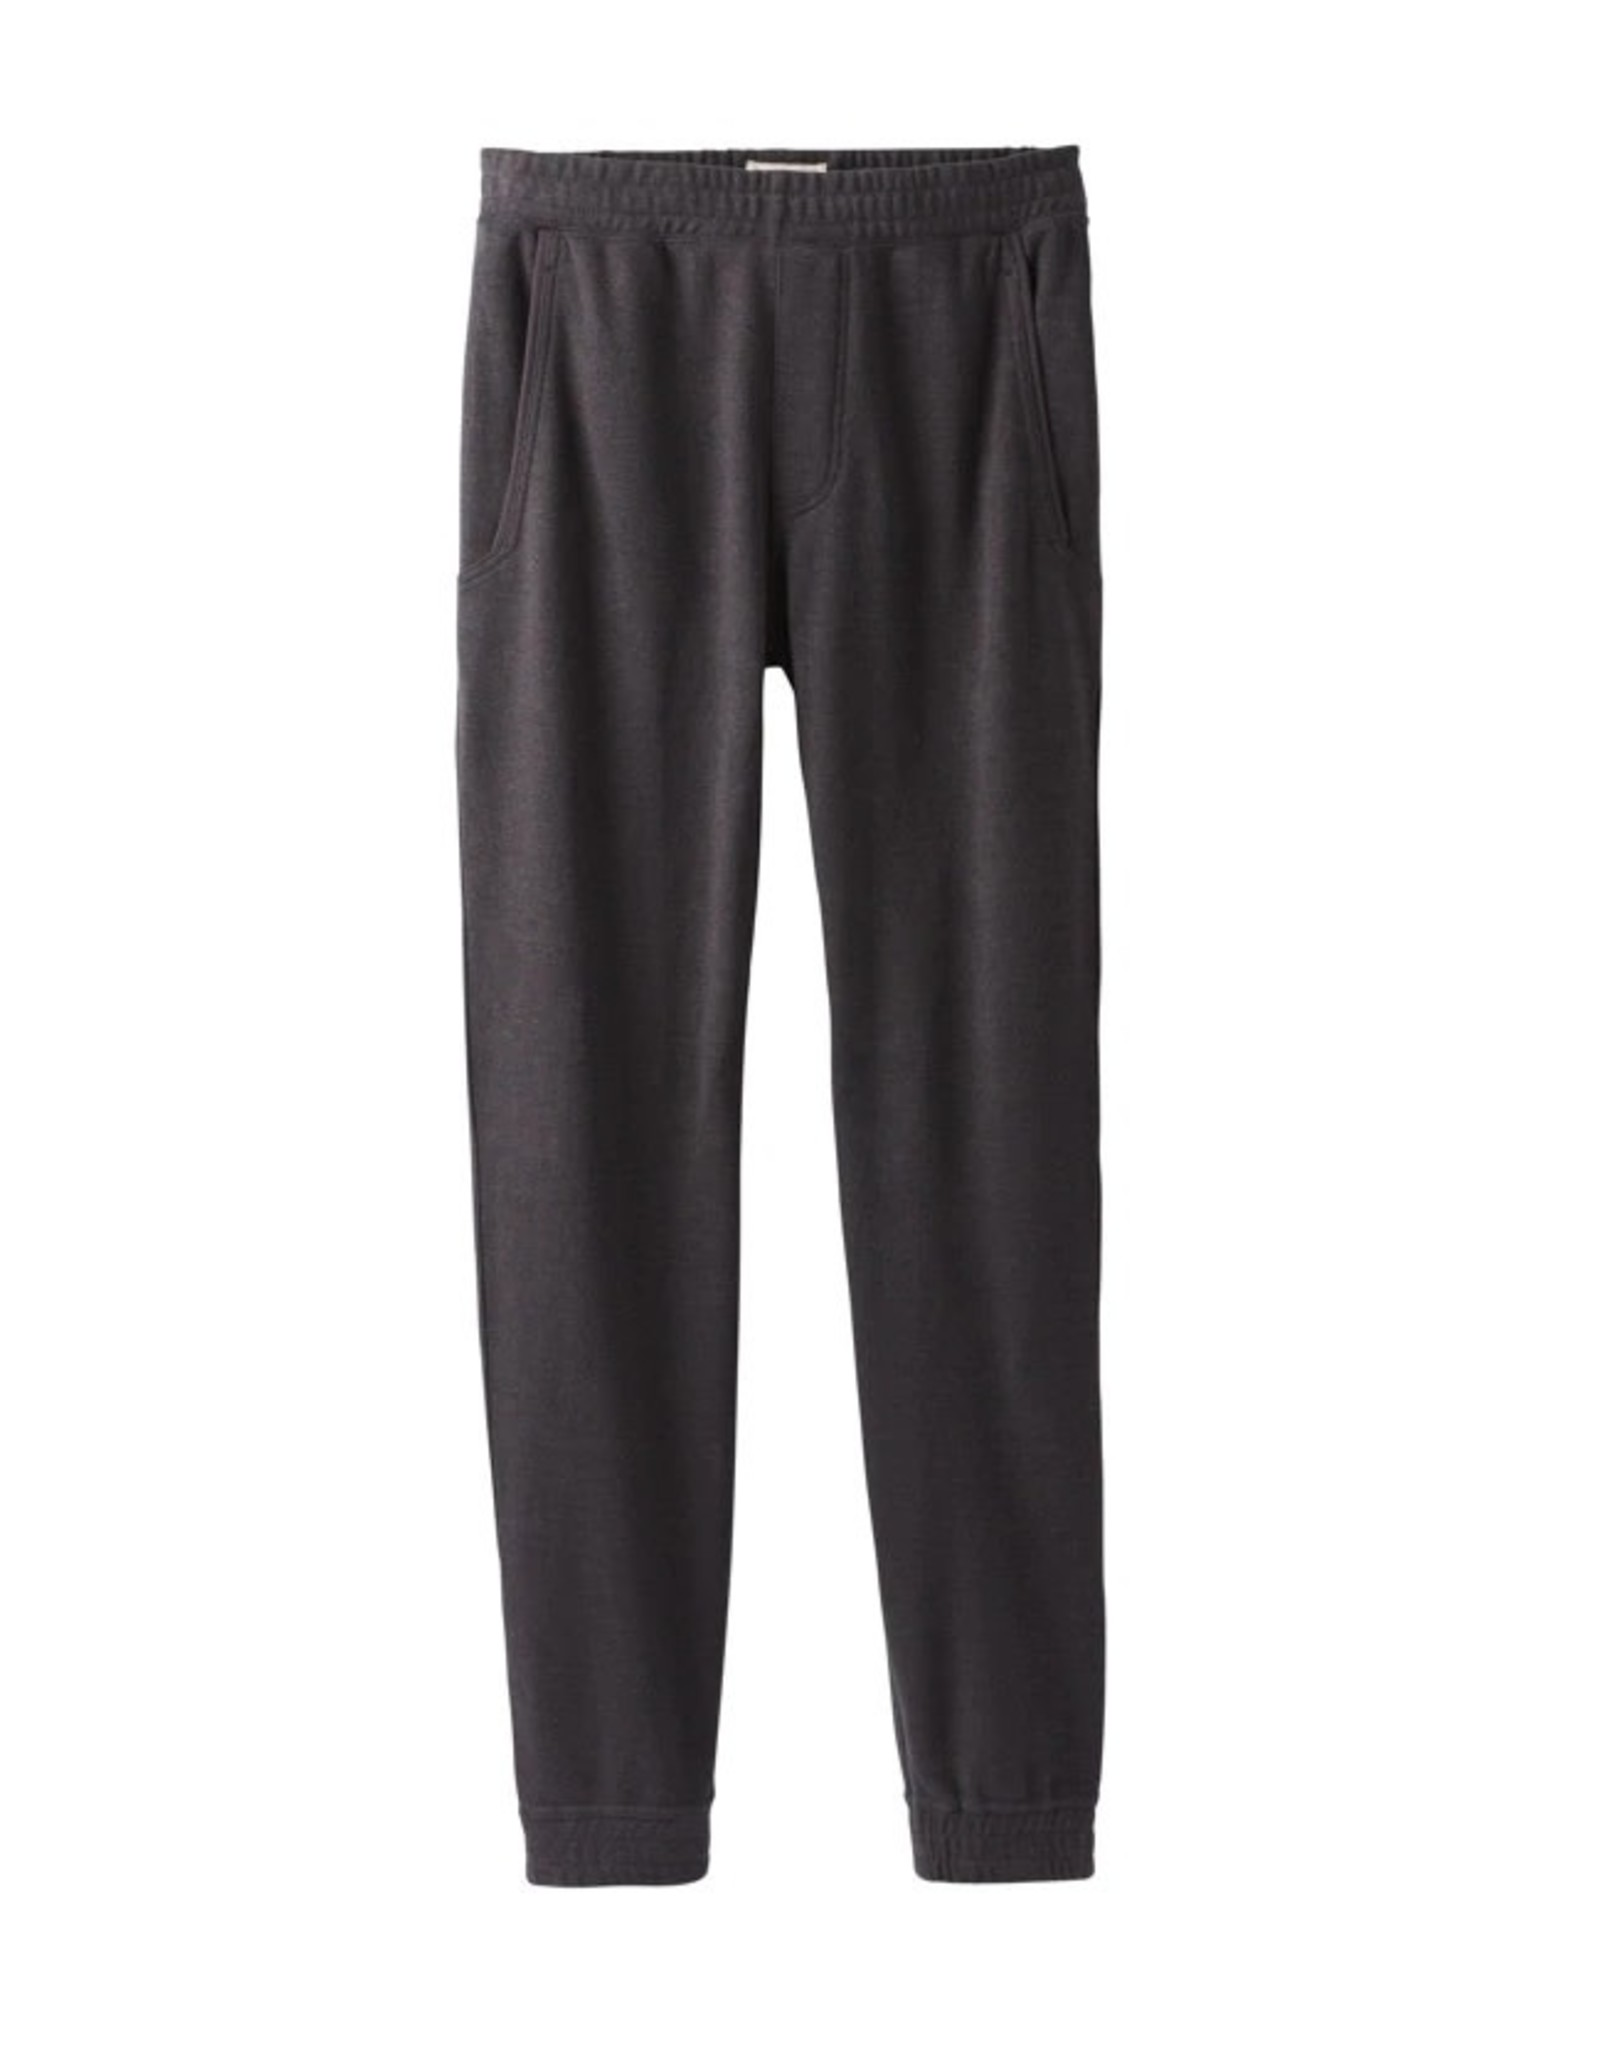 Prana Prana Over Rock Jogger: Charcoal- M